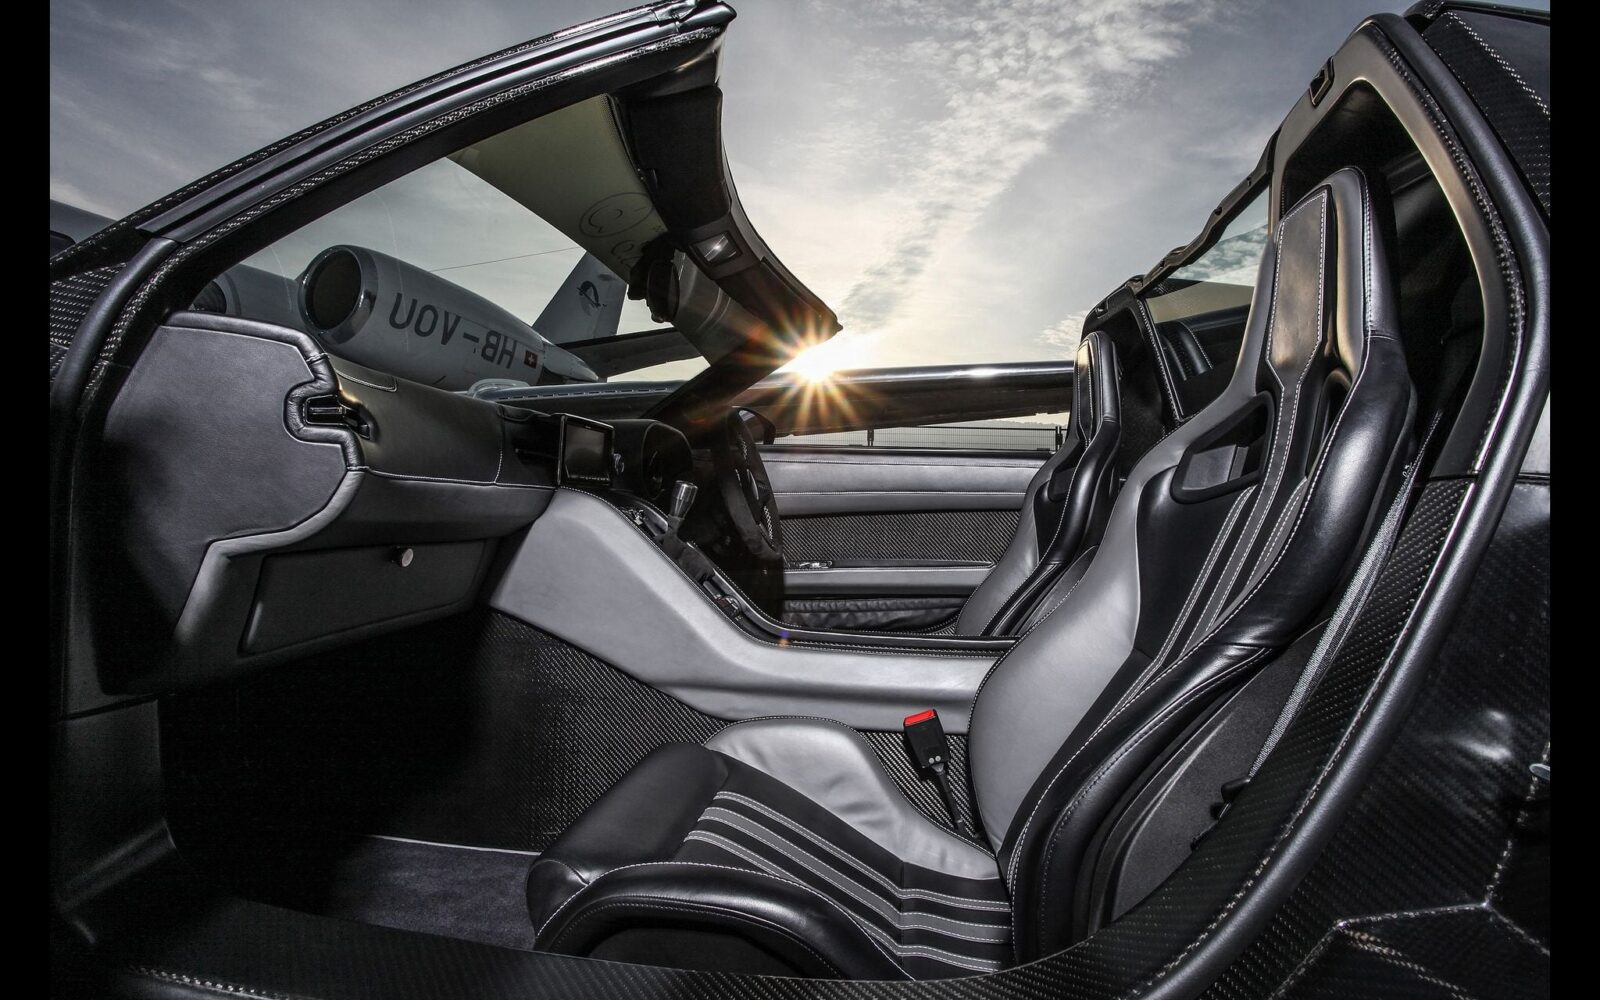 Roding Roadster interior High Quality wallpapers